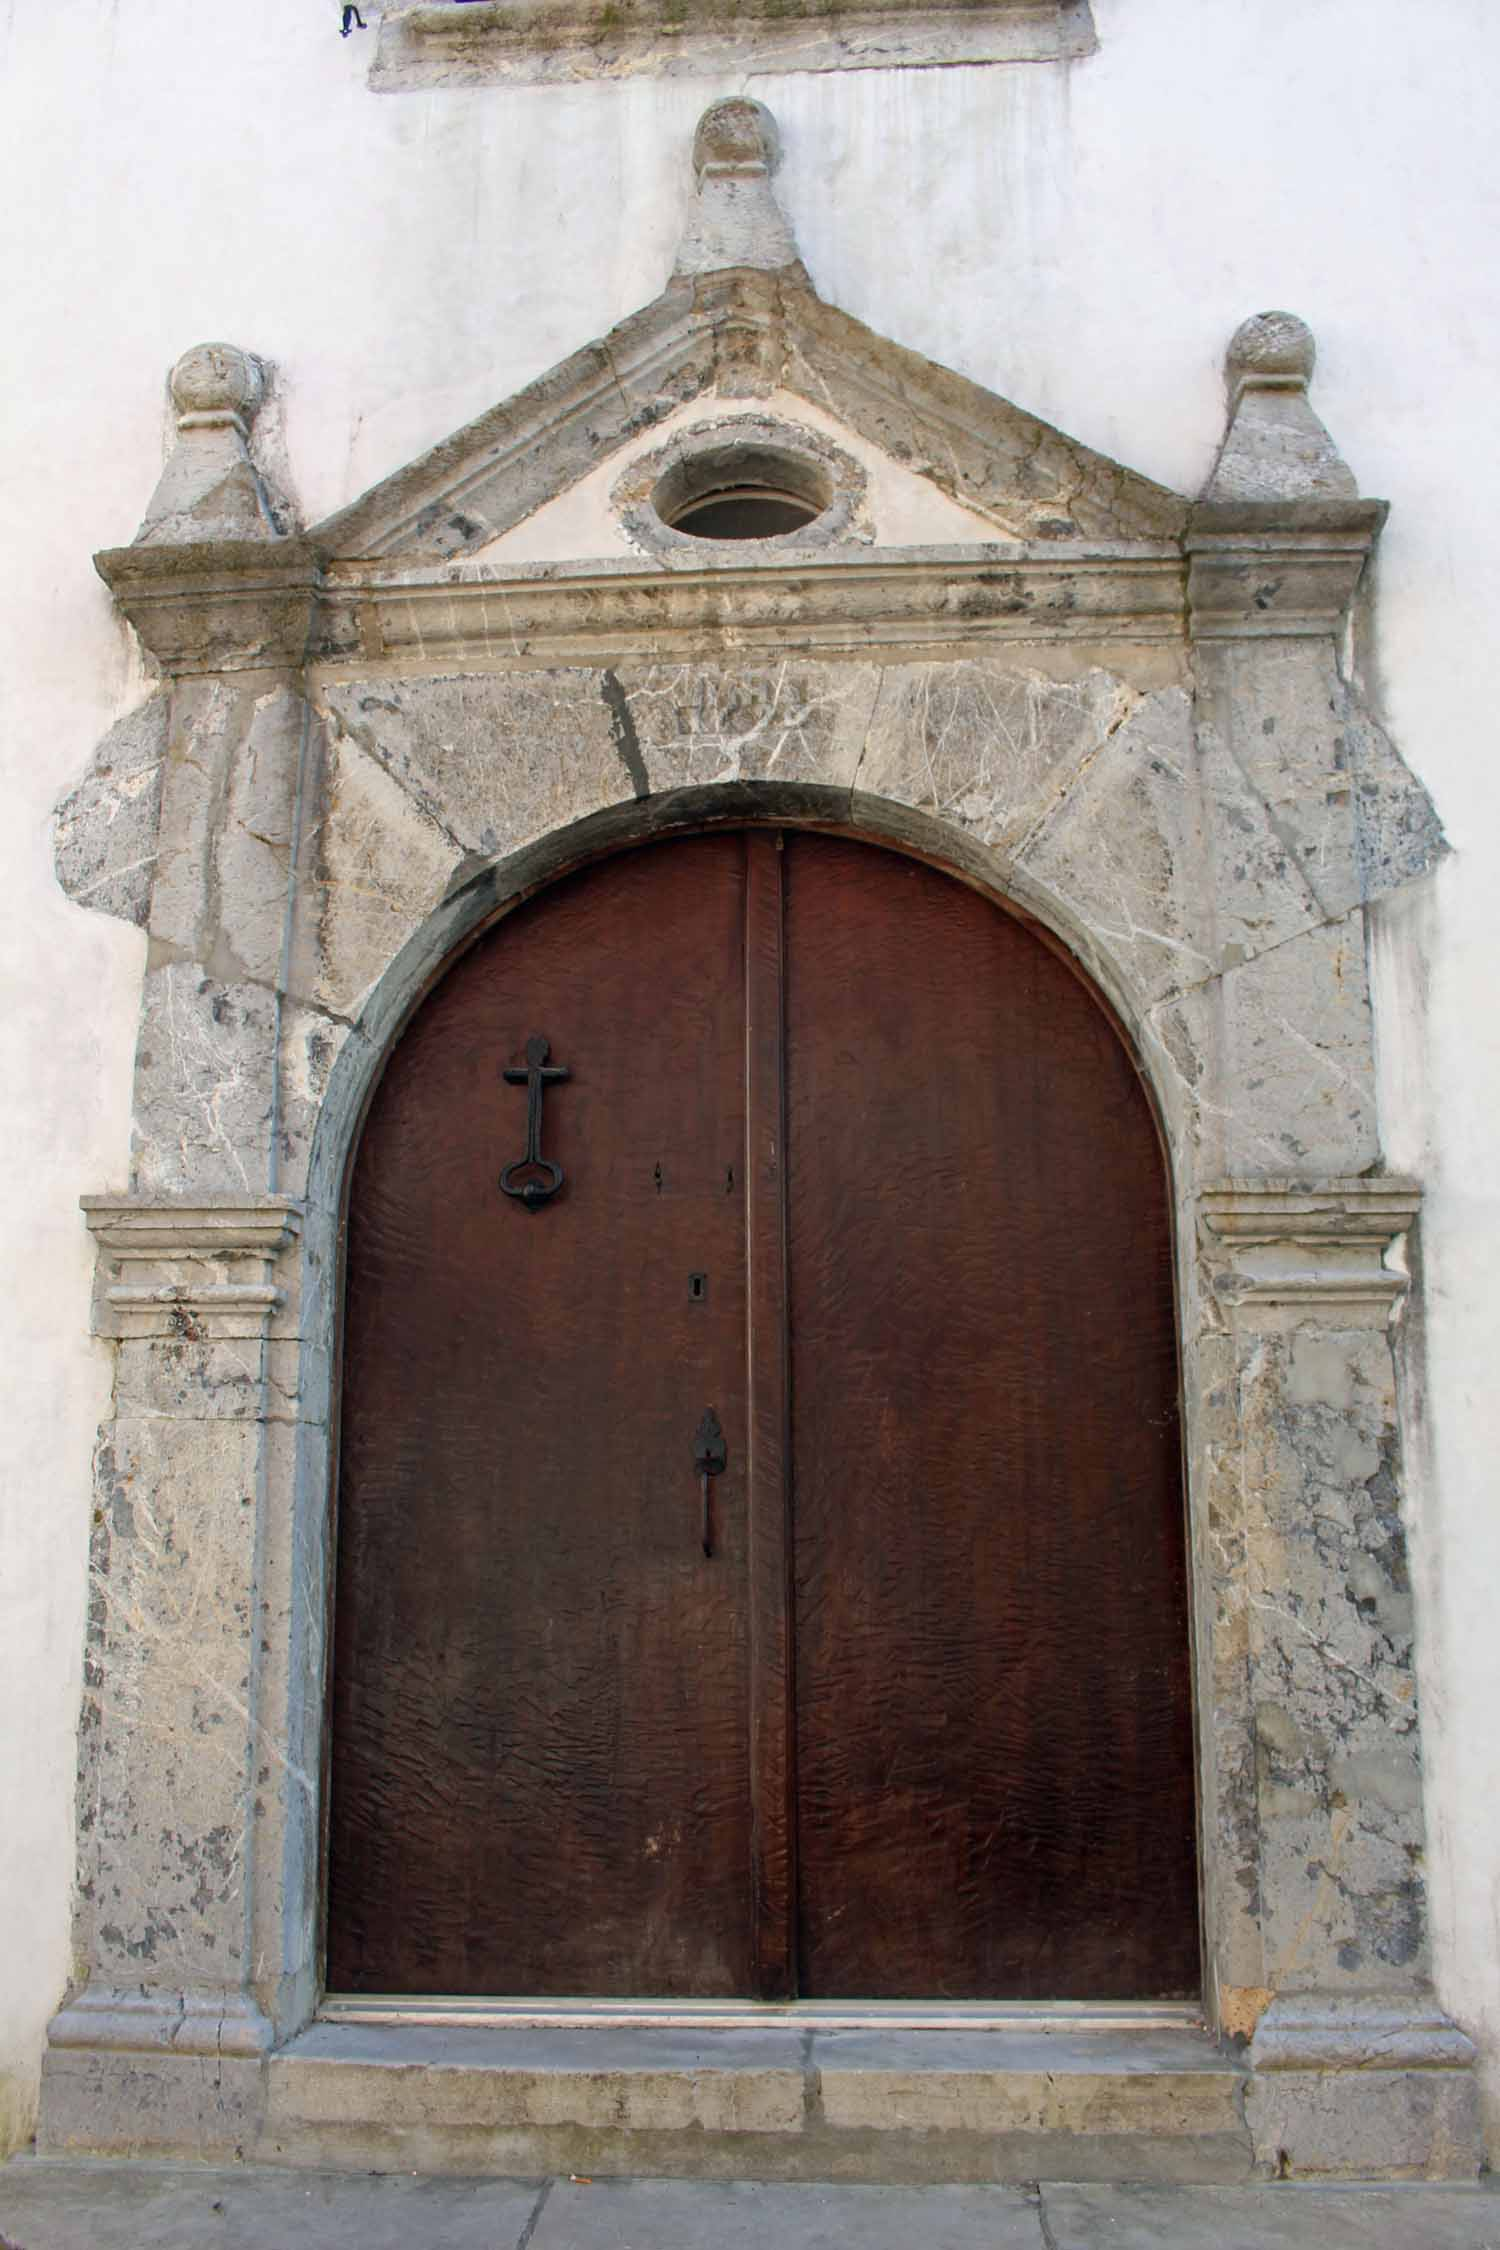 La Bastide Clairence, typical door